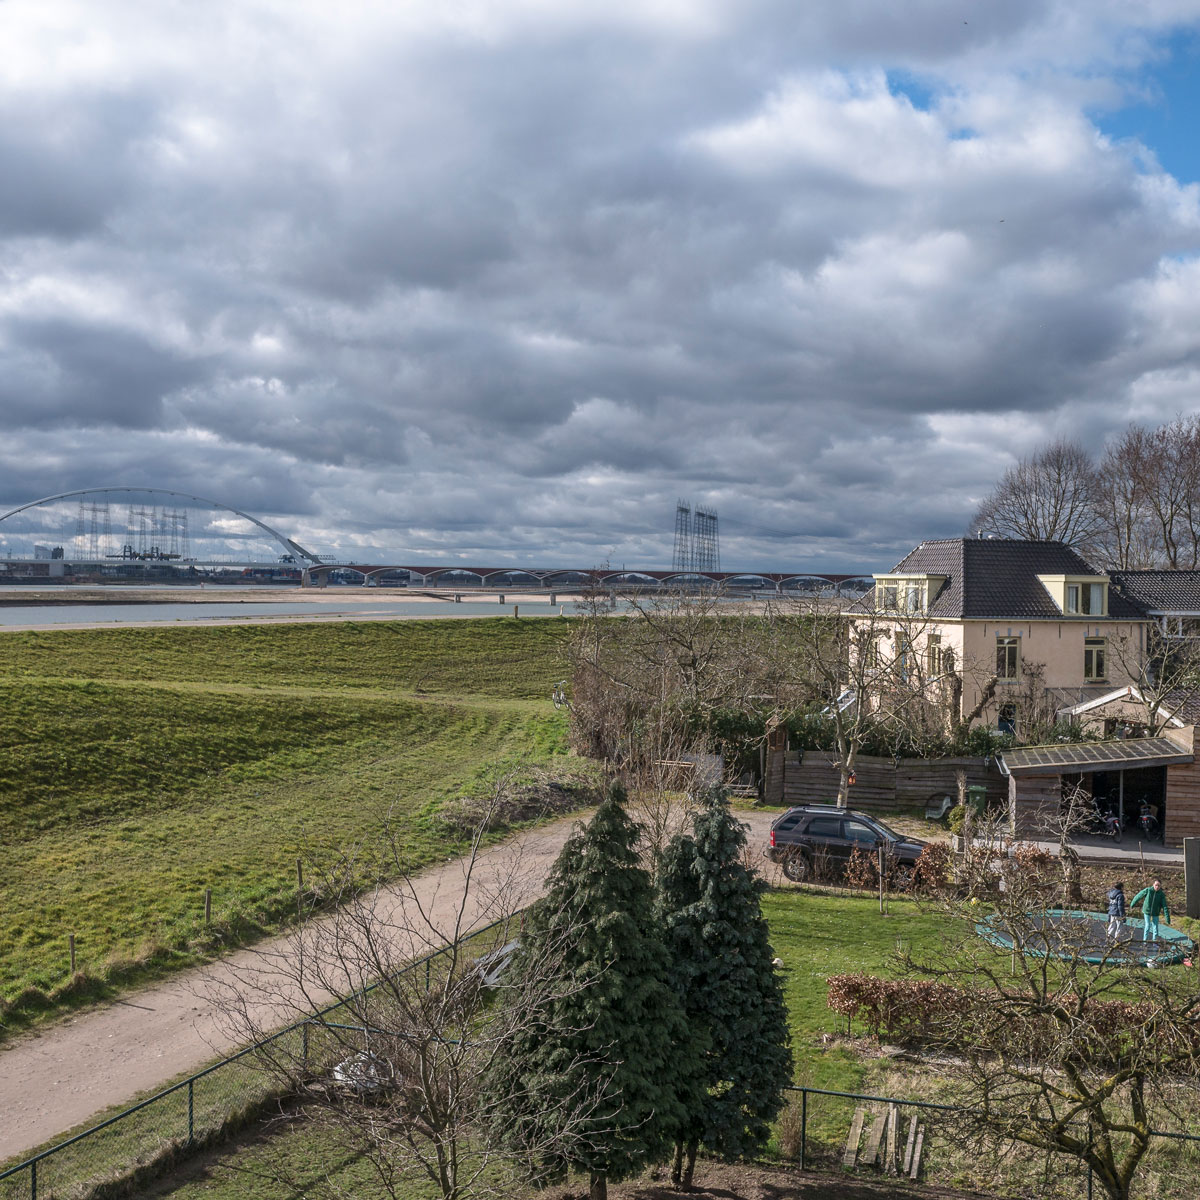 A bird's-eye view of part of the Room for the River project along a branch of the Rhine River in Nijmegen, the Netherlands.